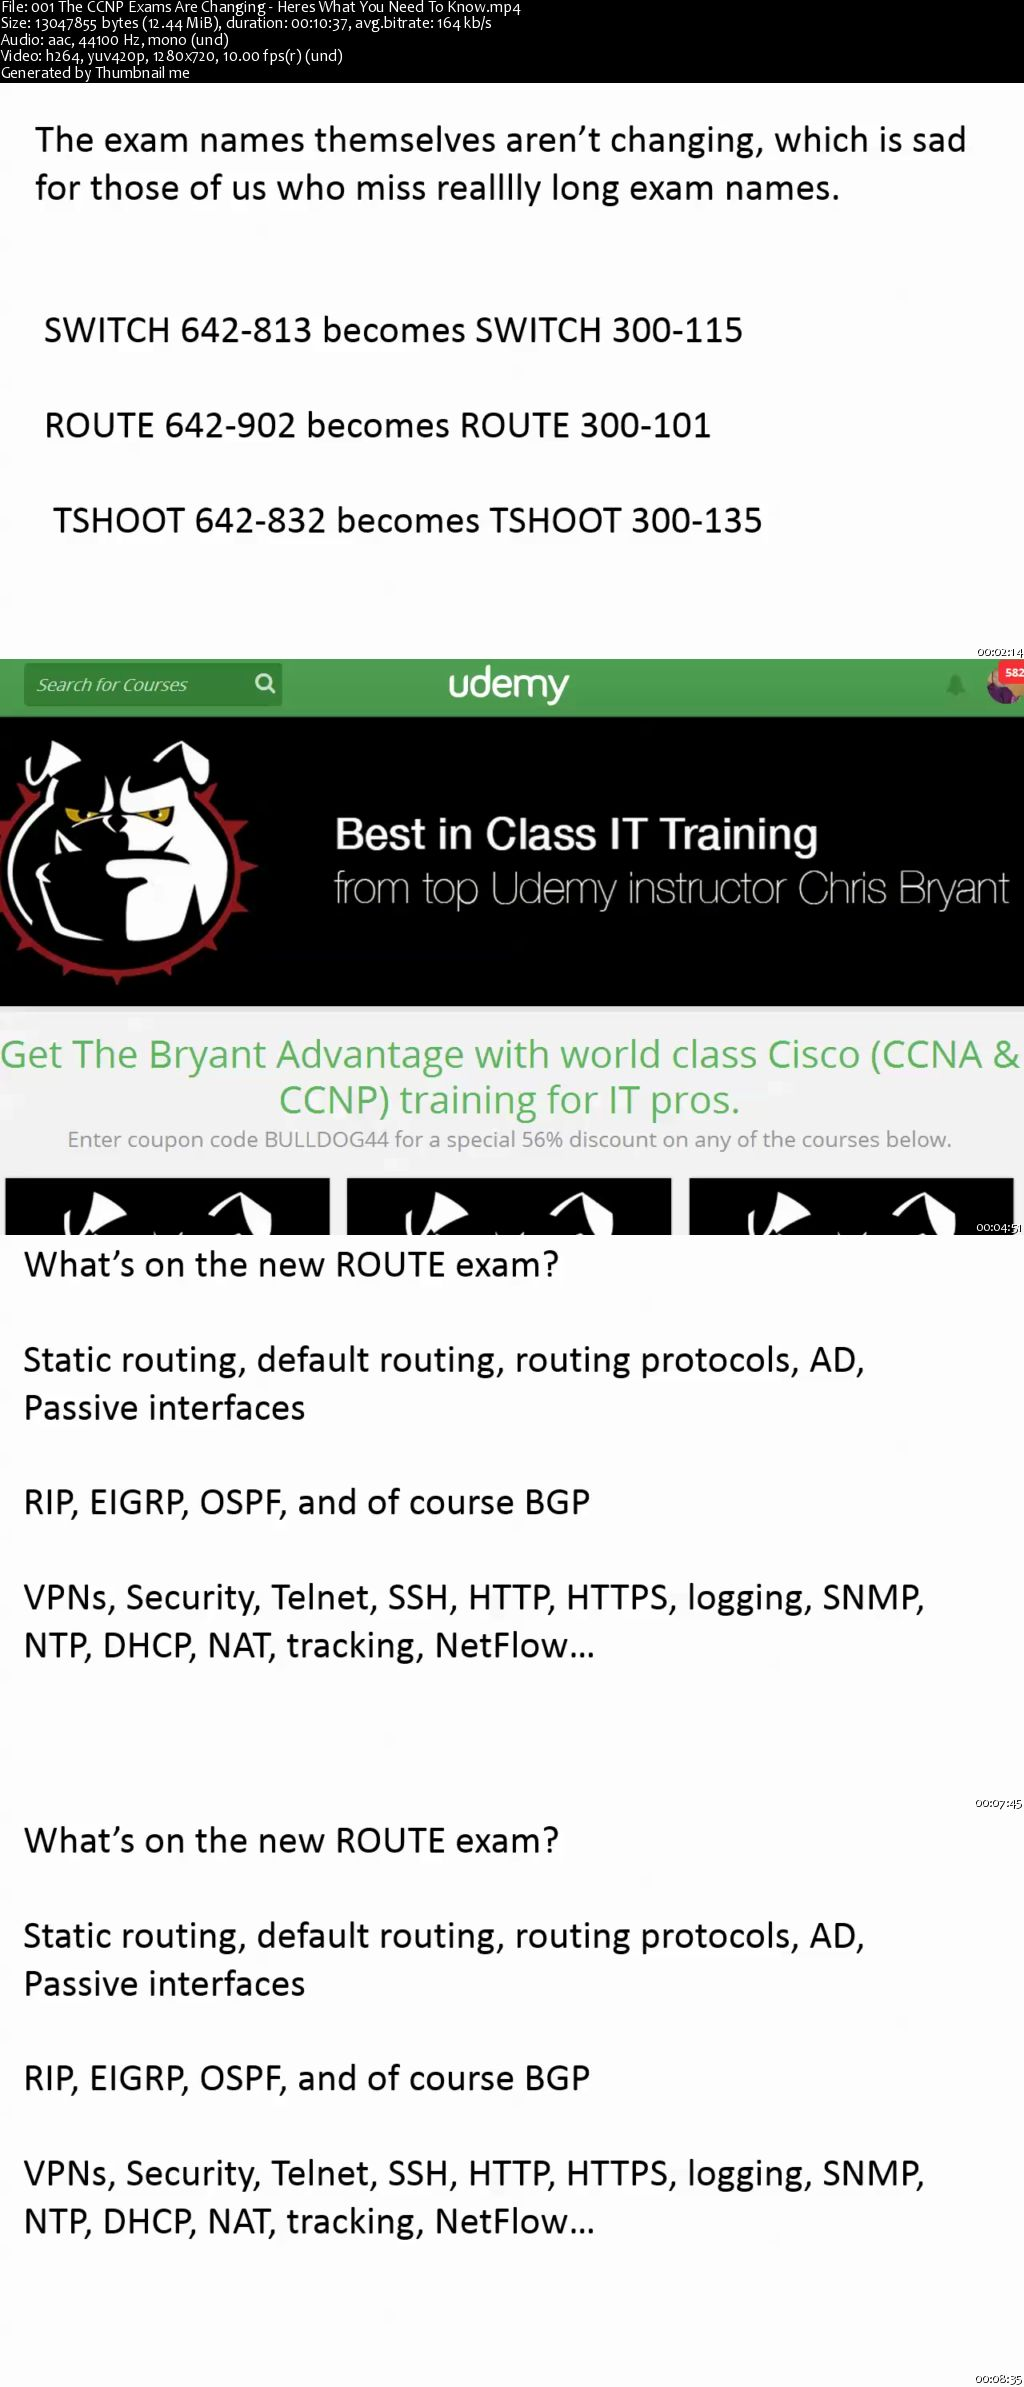 CCNP TSHOOT 2015 Video Boot Camp with Chris Bryant